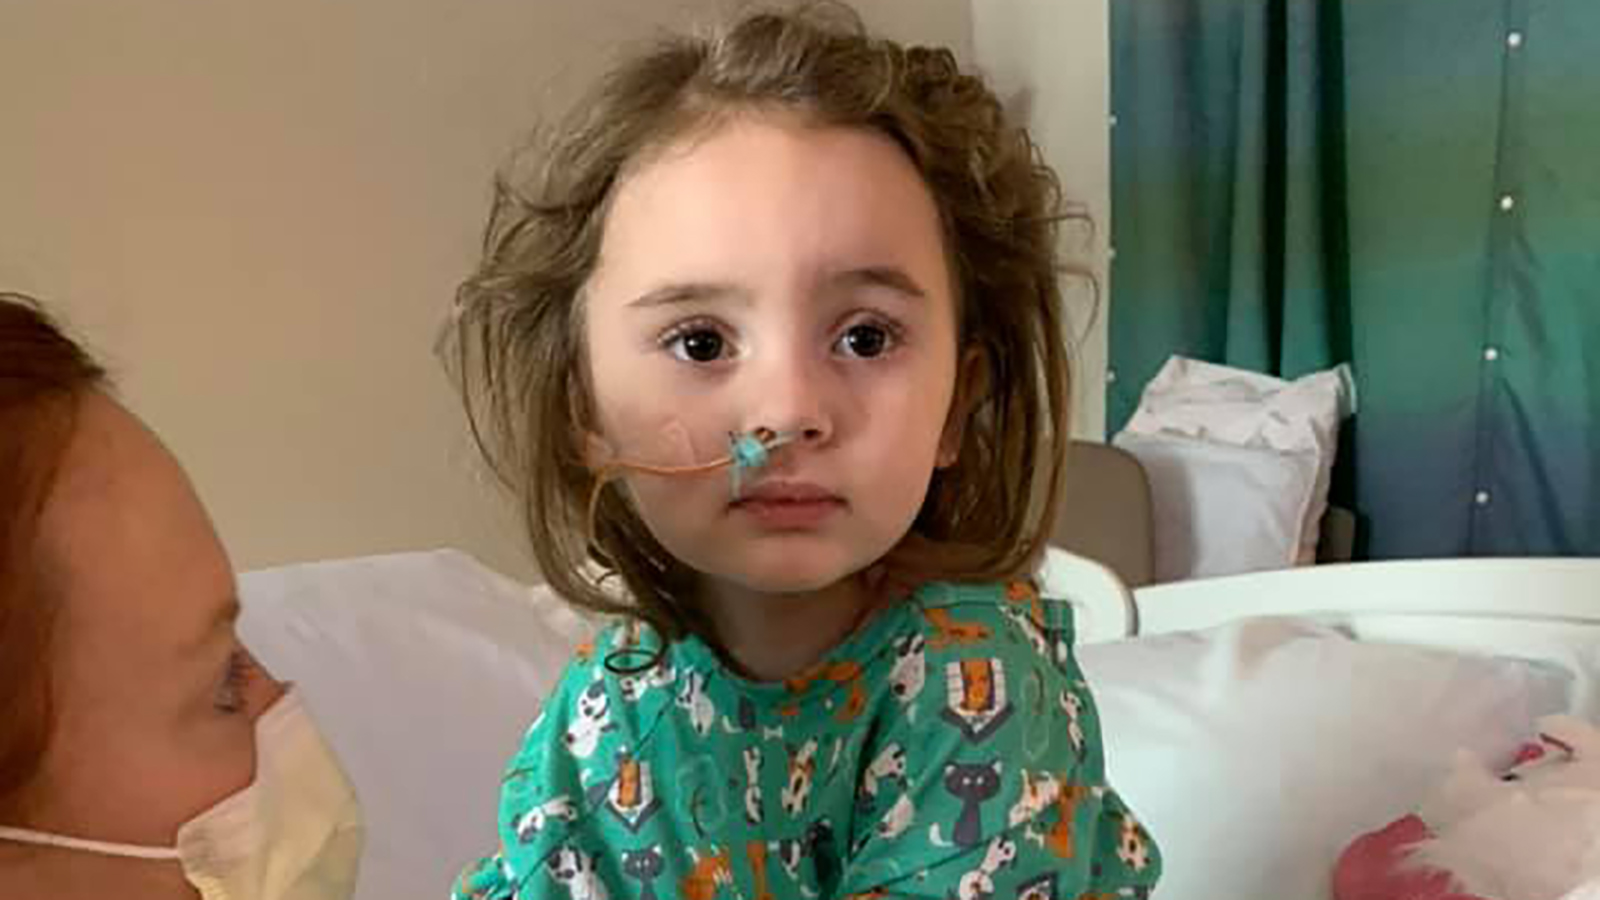 Iowa Girl Regains Eyesight After Losing Vision Due to Flu Complications